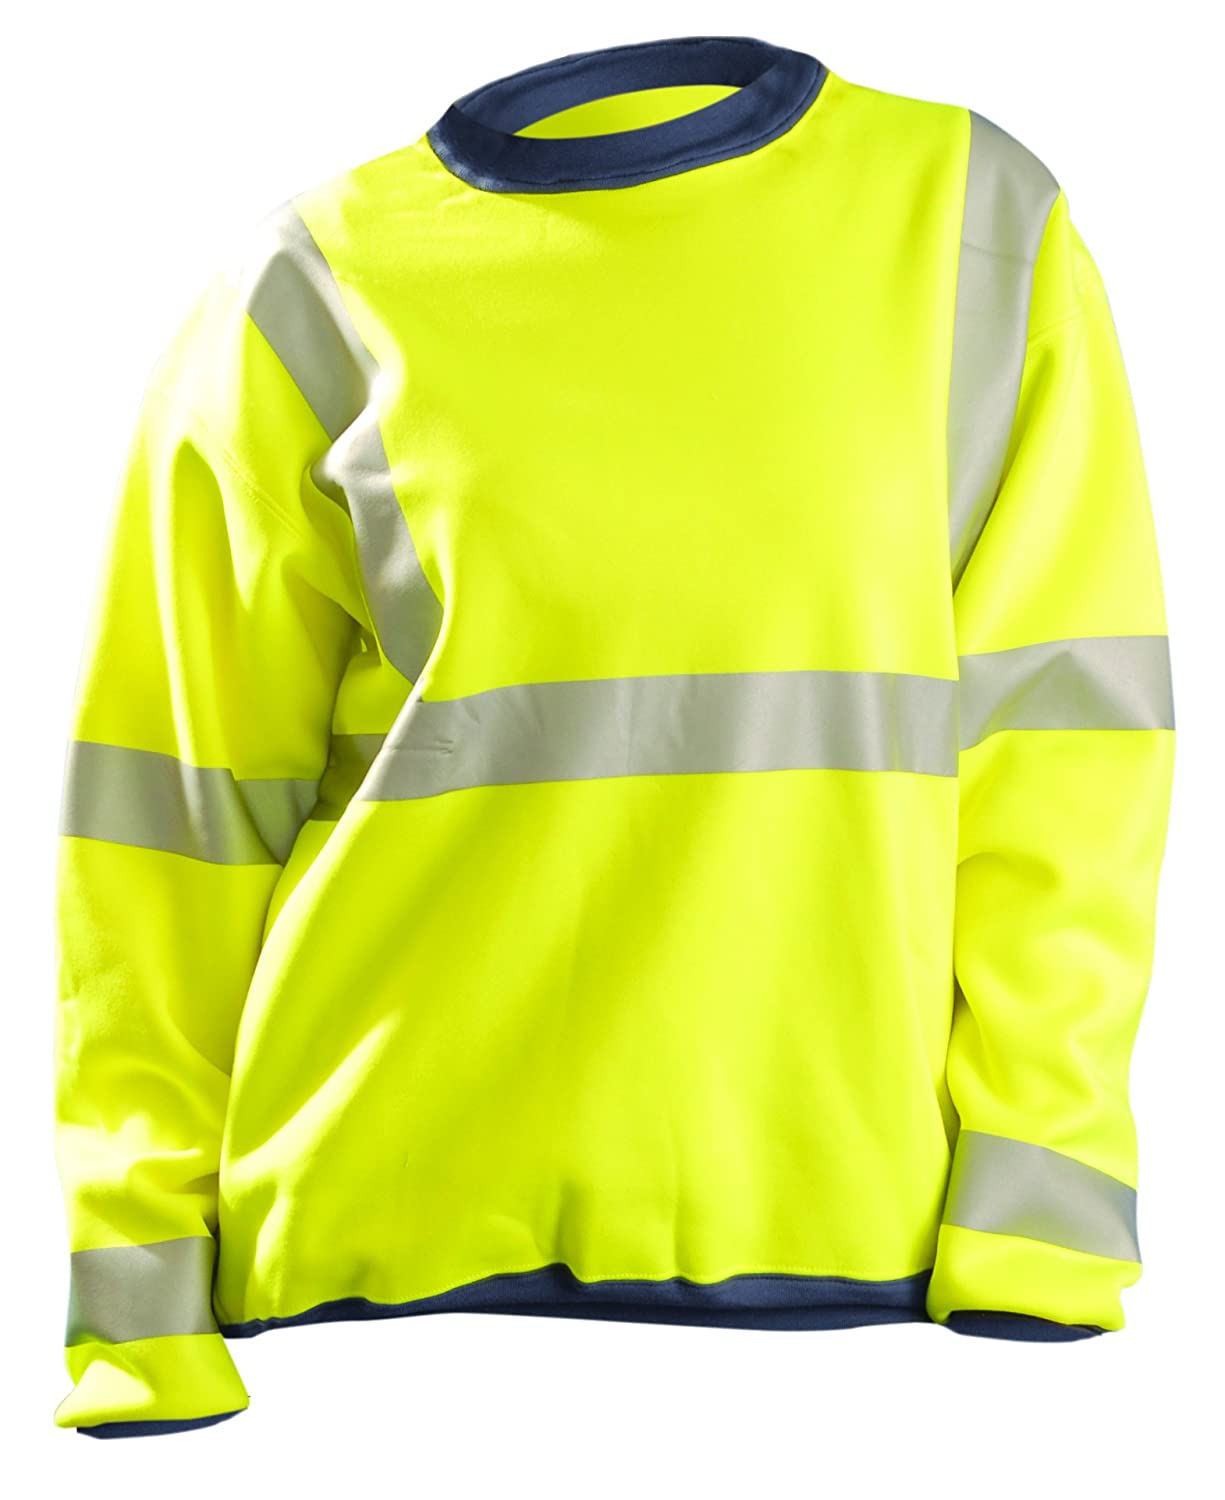 Sweatshirt 100 Popular shop is the lowest price challenge Ranking TOP2 per. 2XL Polyester Yellow